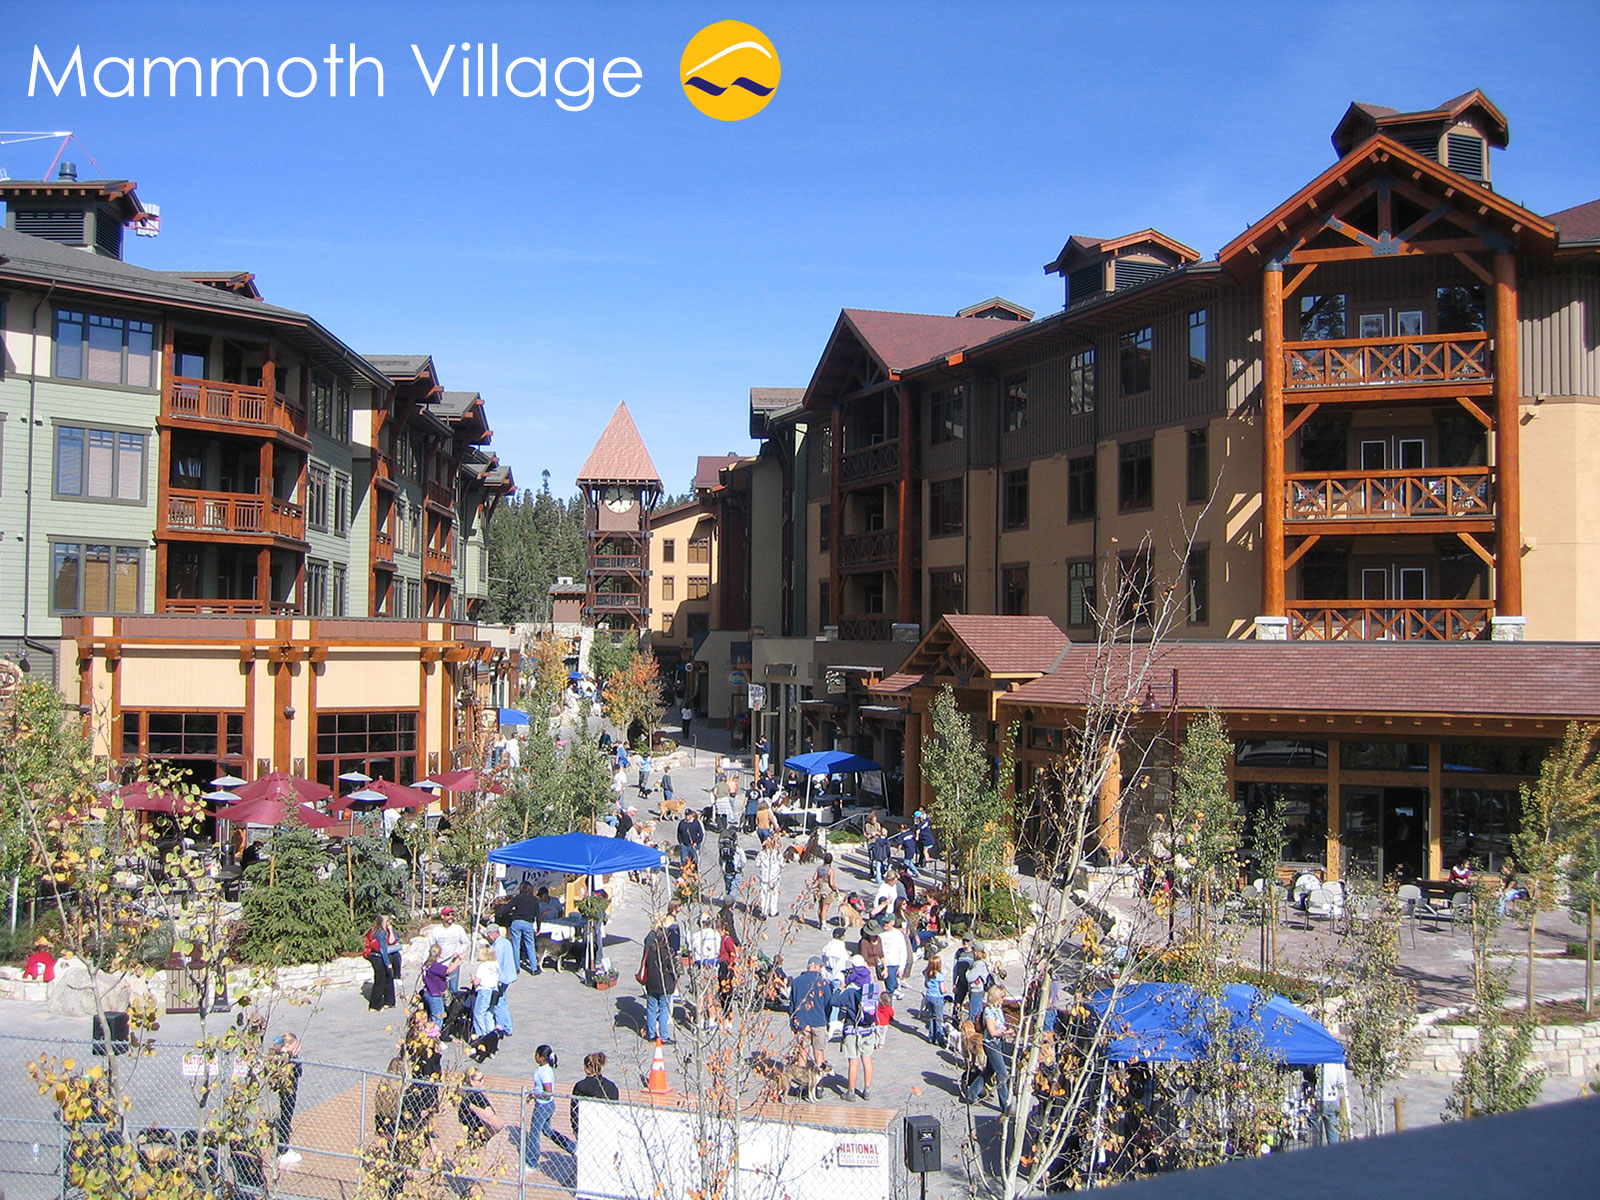 The Mammoth Village